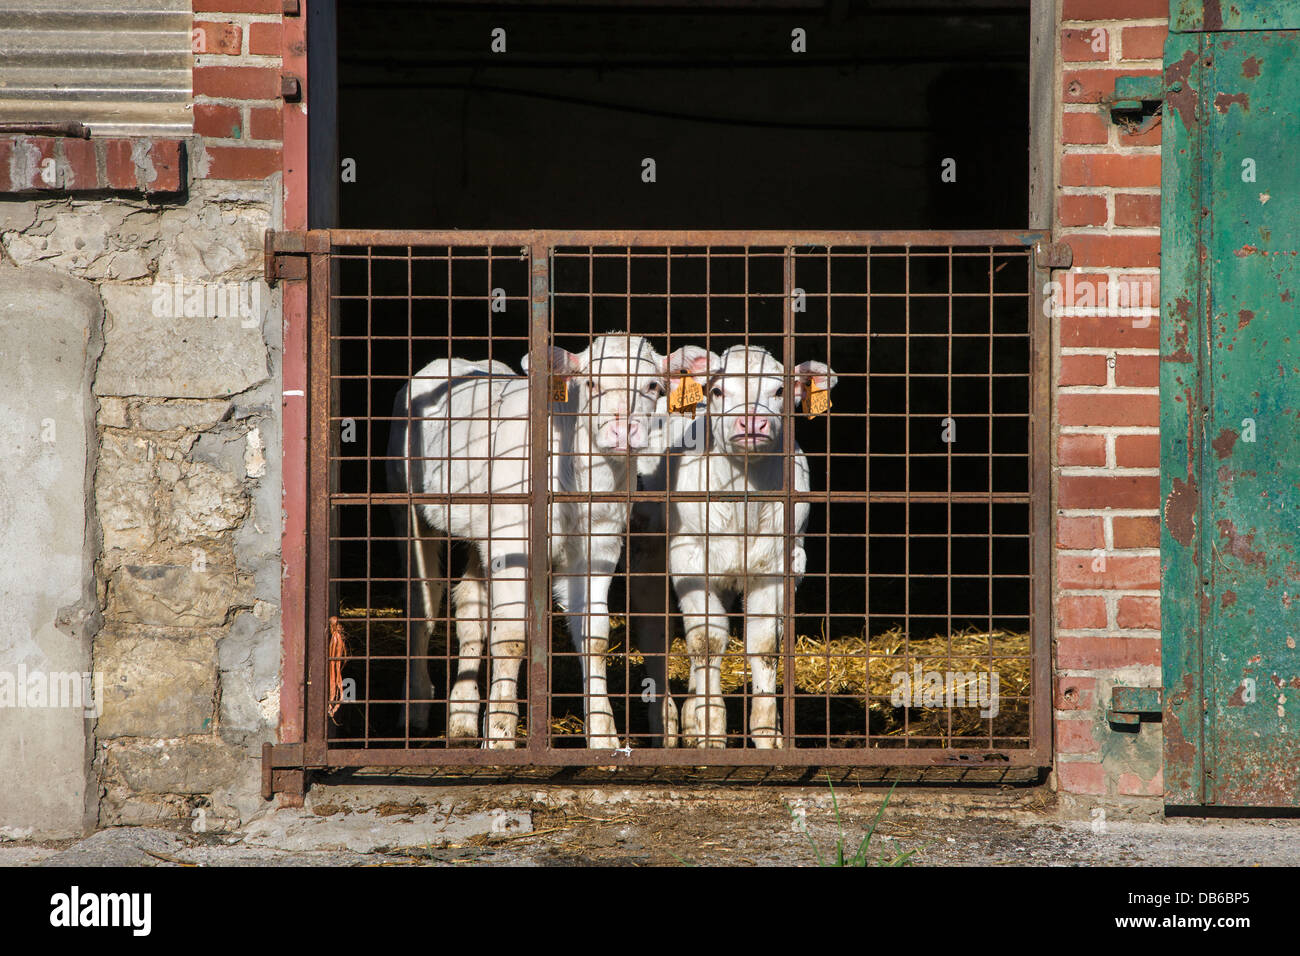 Two curious white calves tagged with earmarks in cow shed at dairy farm stock image